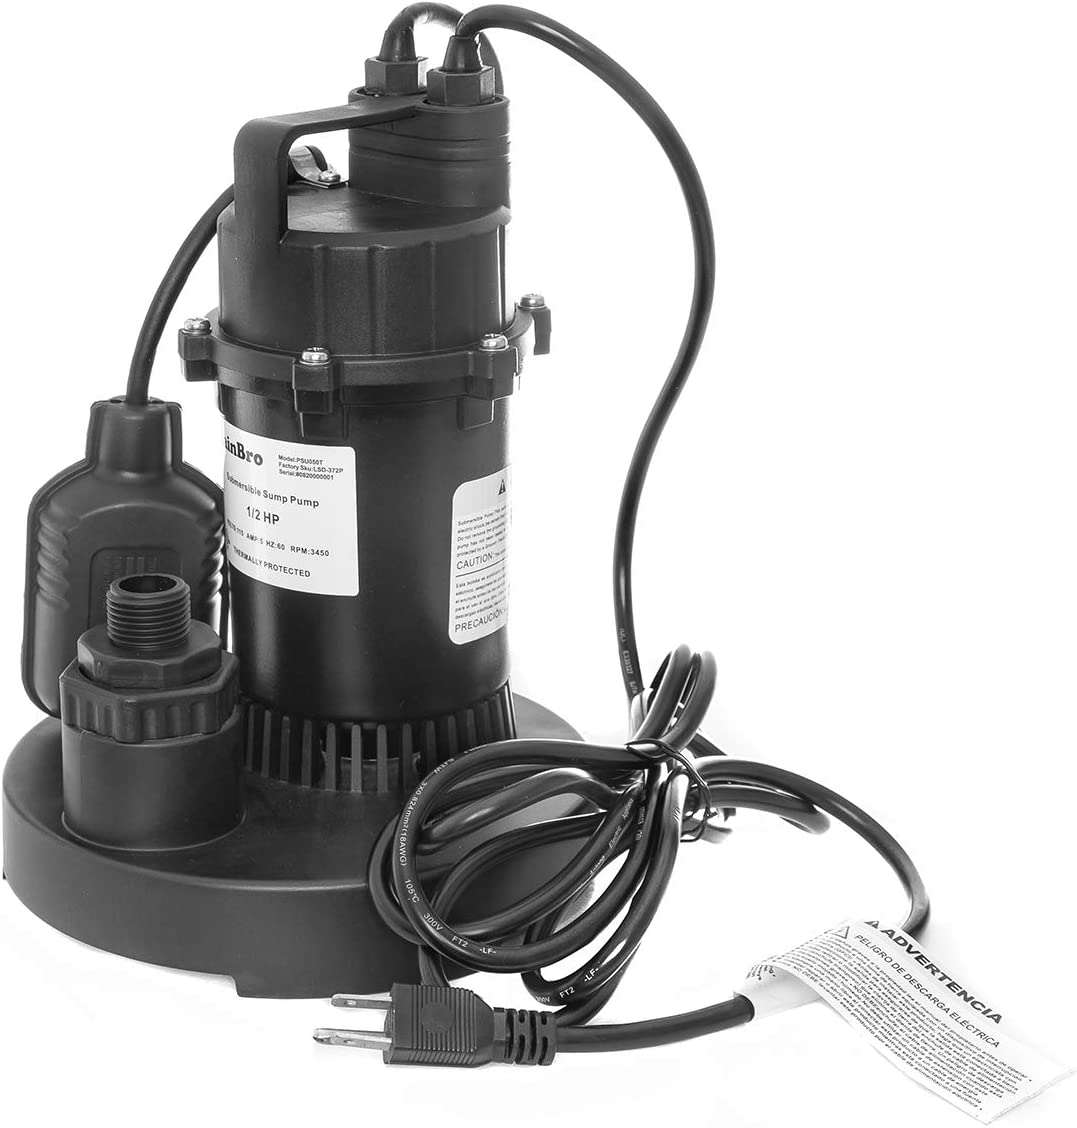 RainBro 1/2 HP Thermoplastic Submersible Sump Pump with Tethered Float Switch, Model# PSU050T